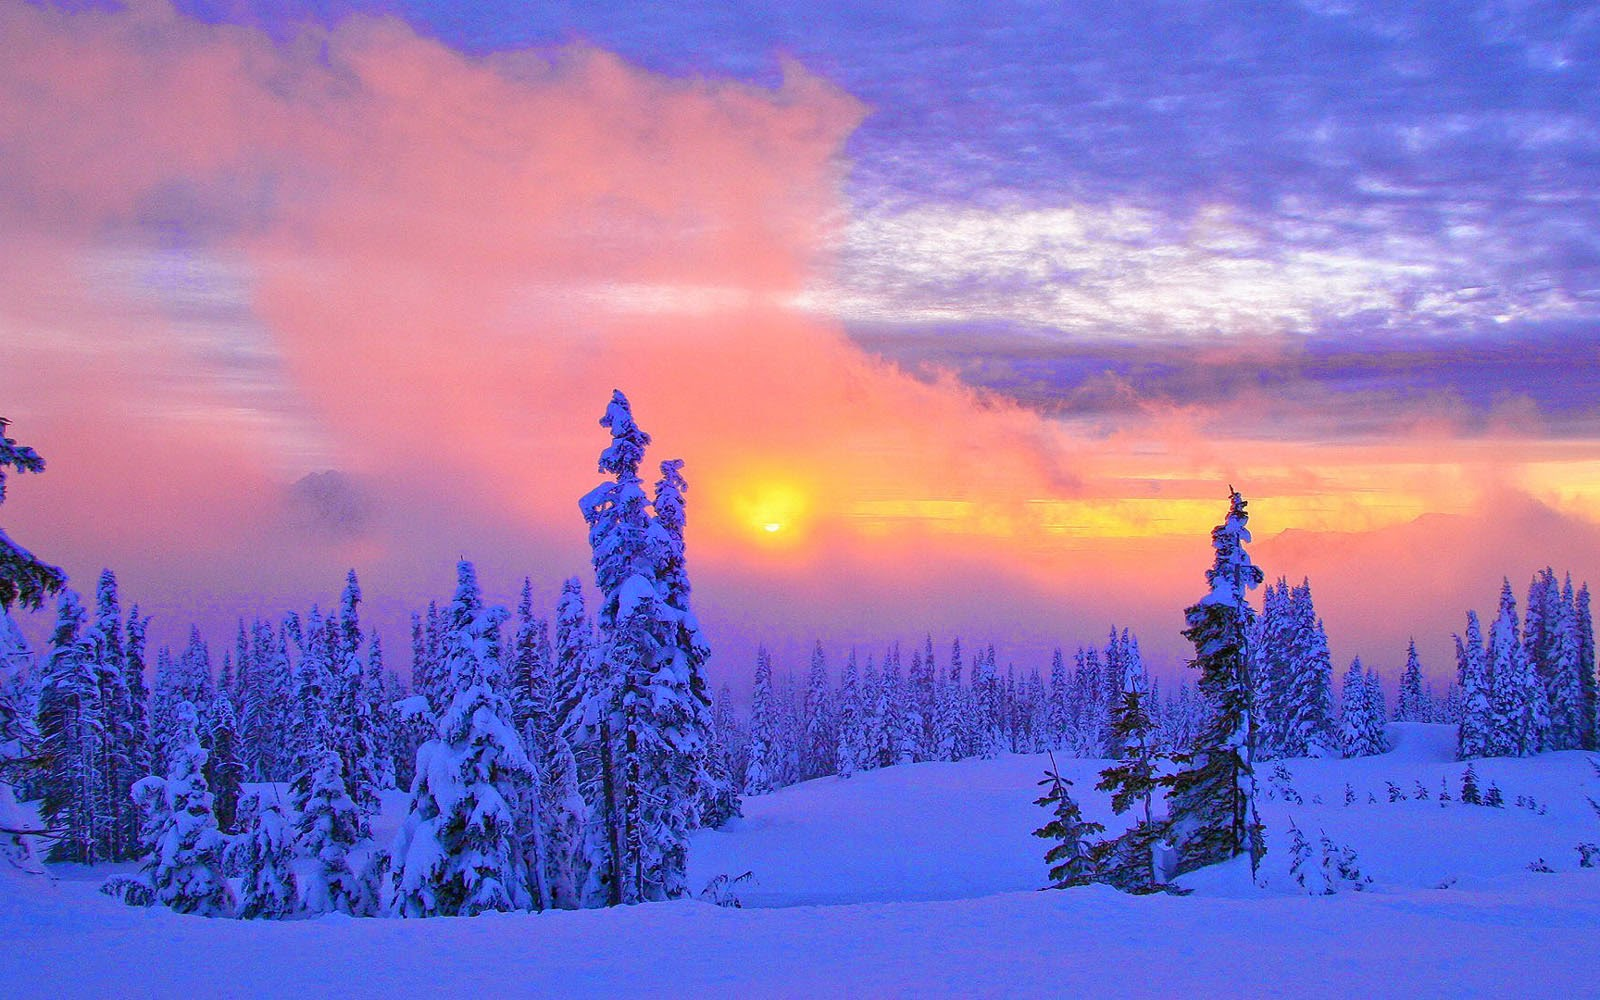 wallpapers Beautiful Winter Scenery Wallpapers 1600x1000